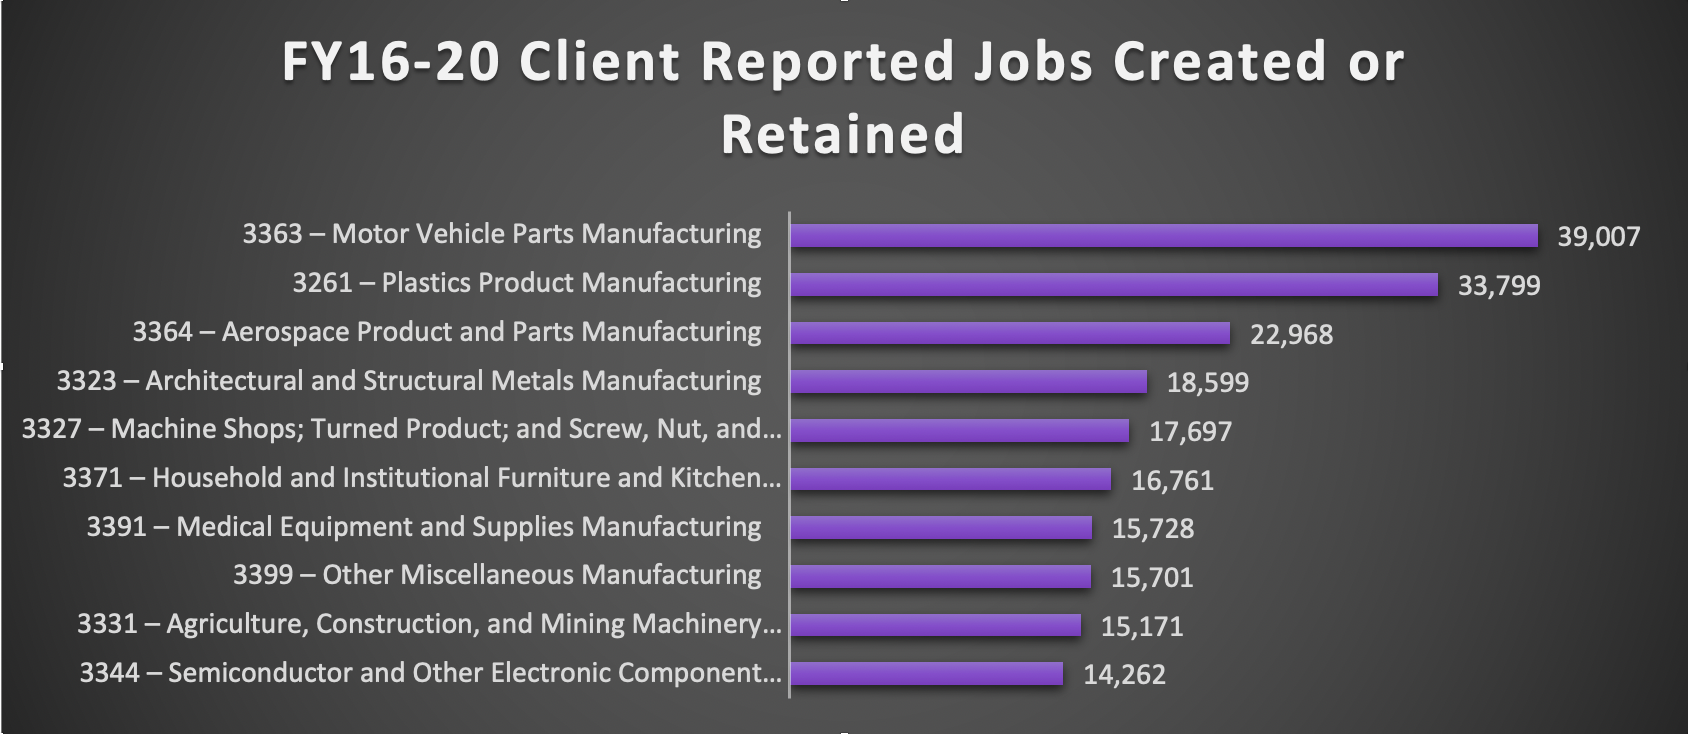 FY16-20 Client Reported Jobs Created or Retained